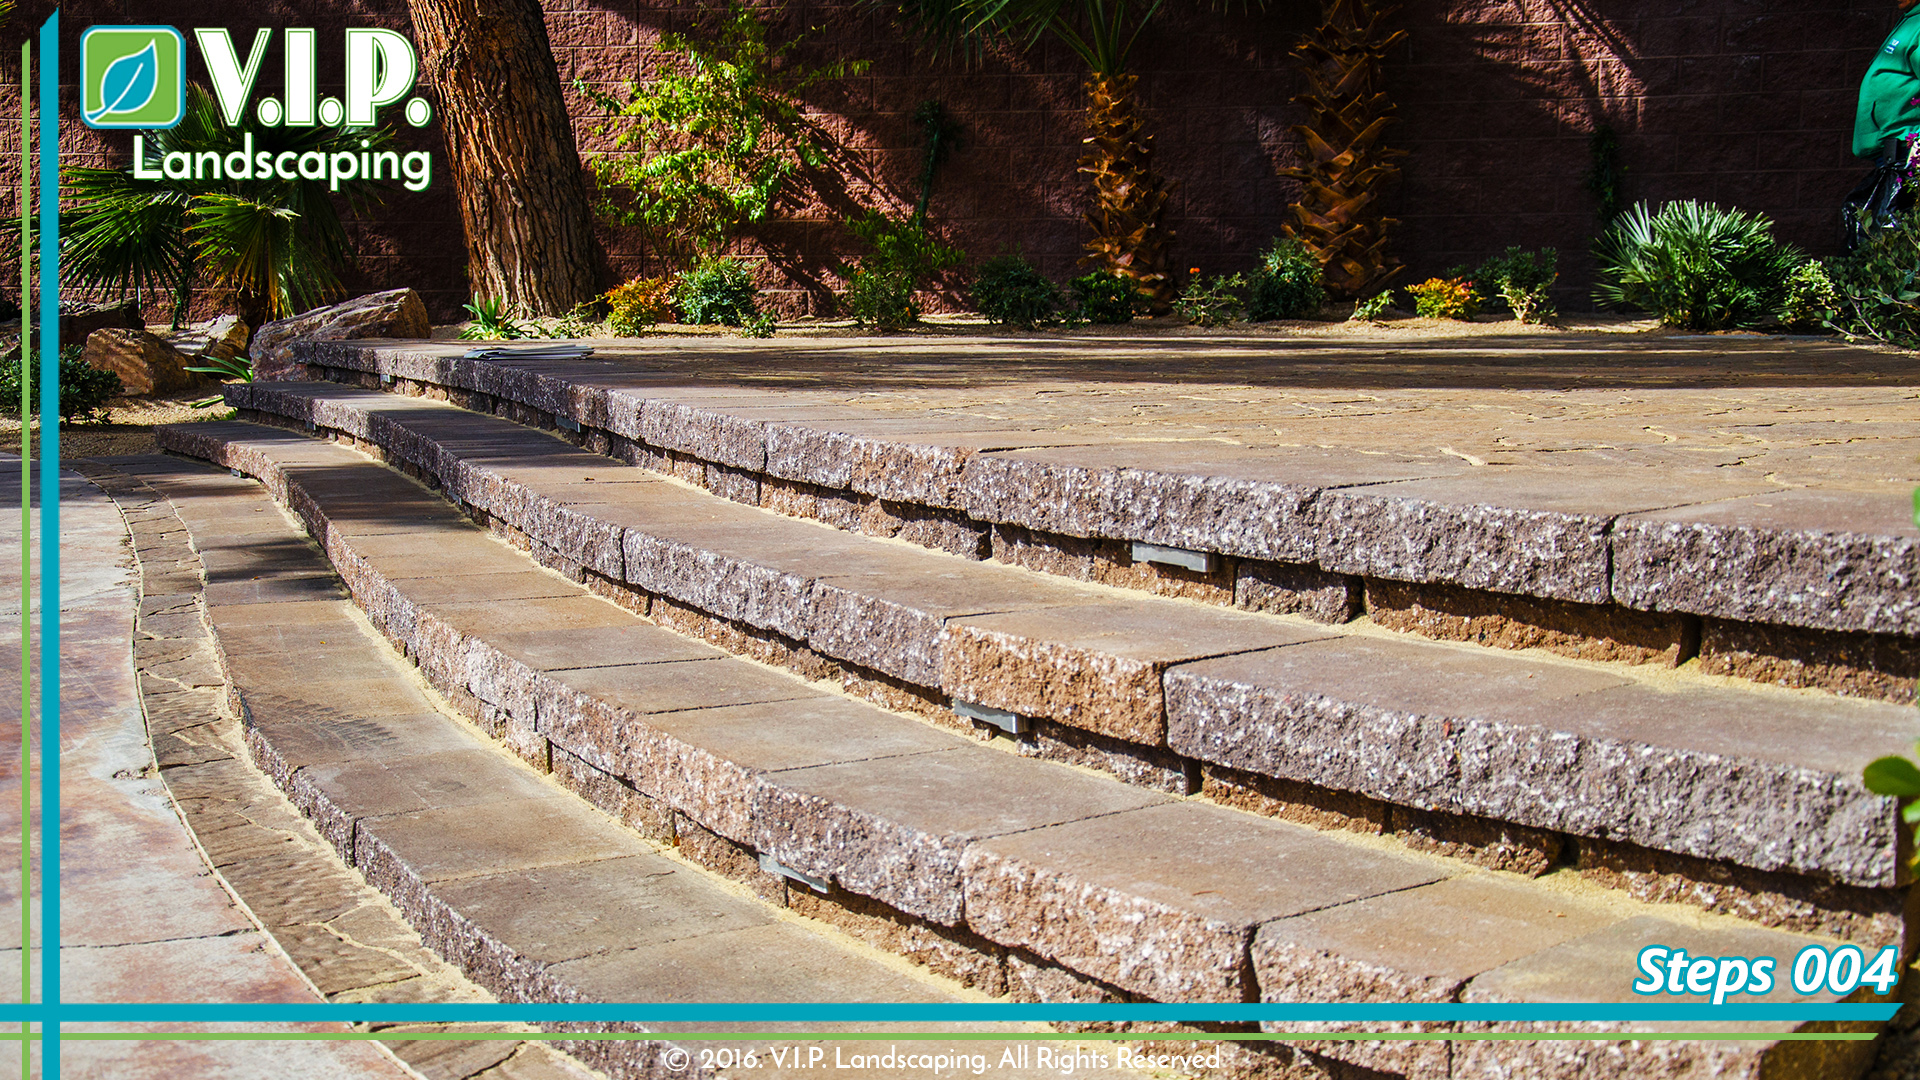 Steps 004 1920x1080 v i p landscaping for Vip lawn mowing services